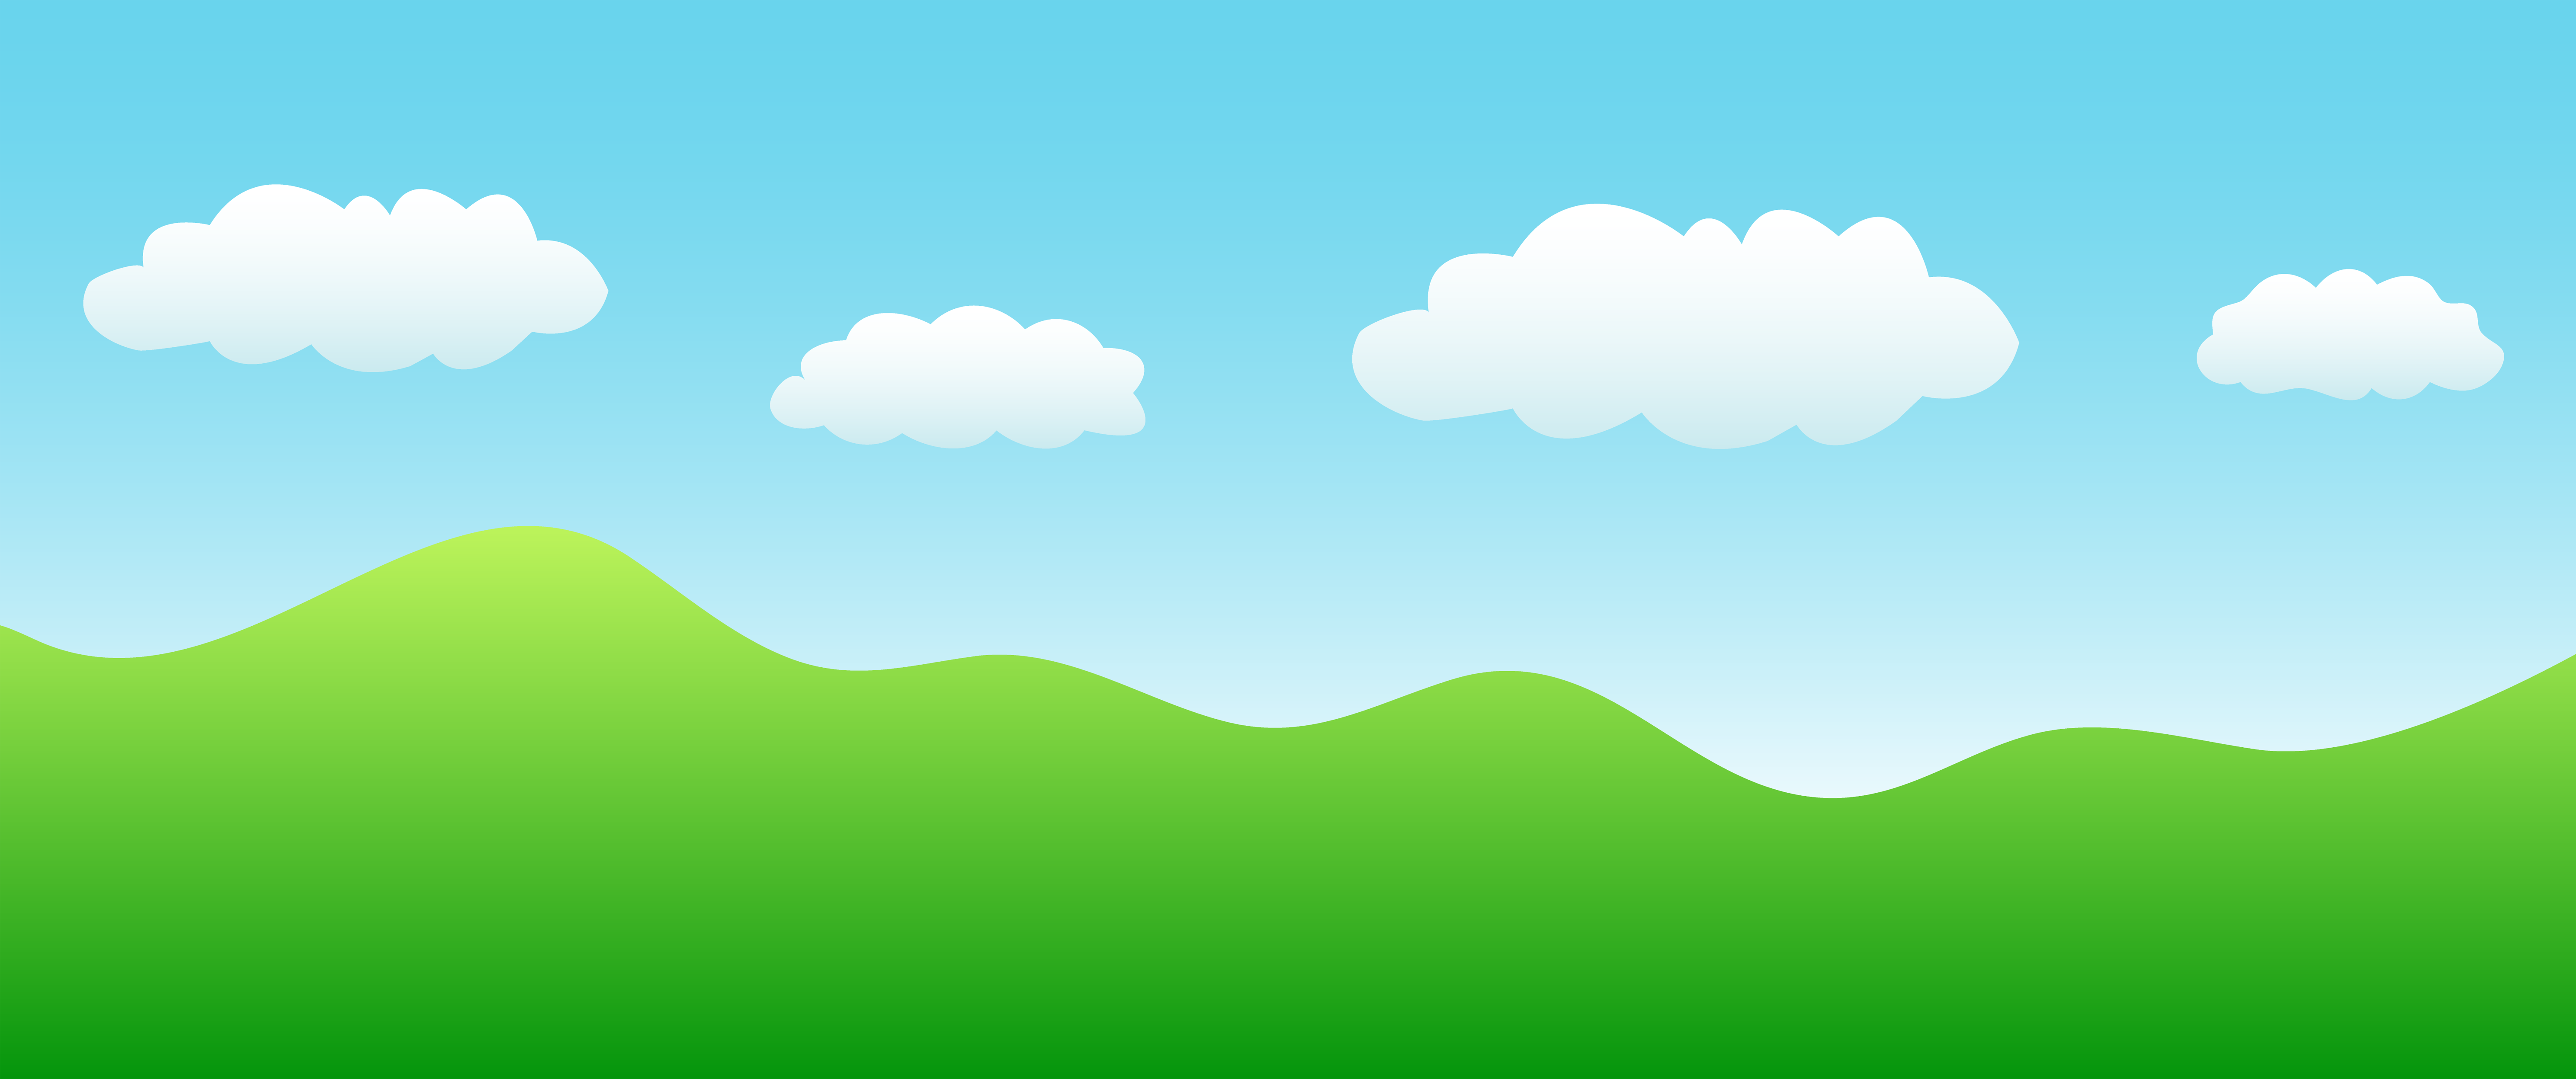 Free Blue Sky Clipart, Download Free Clip Art, Free Clip Art.